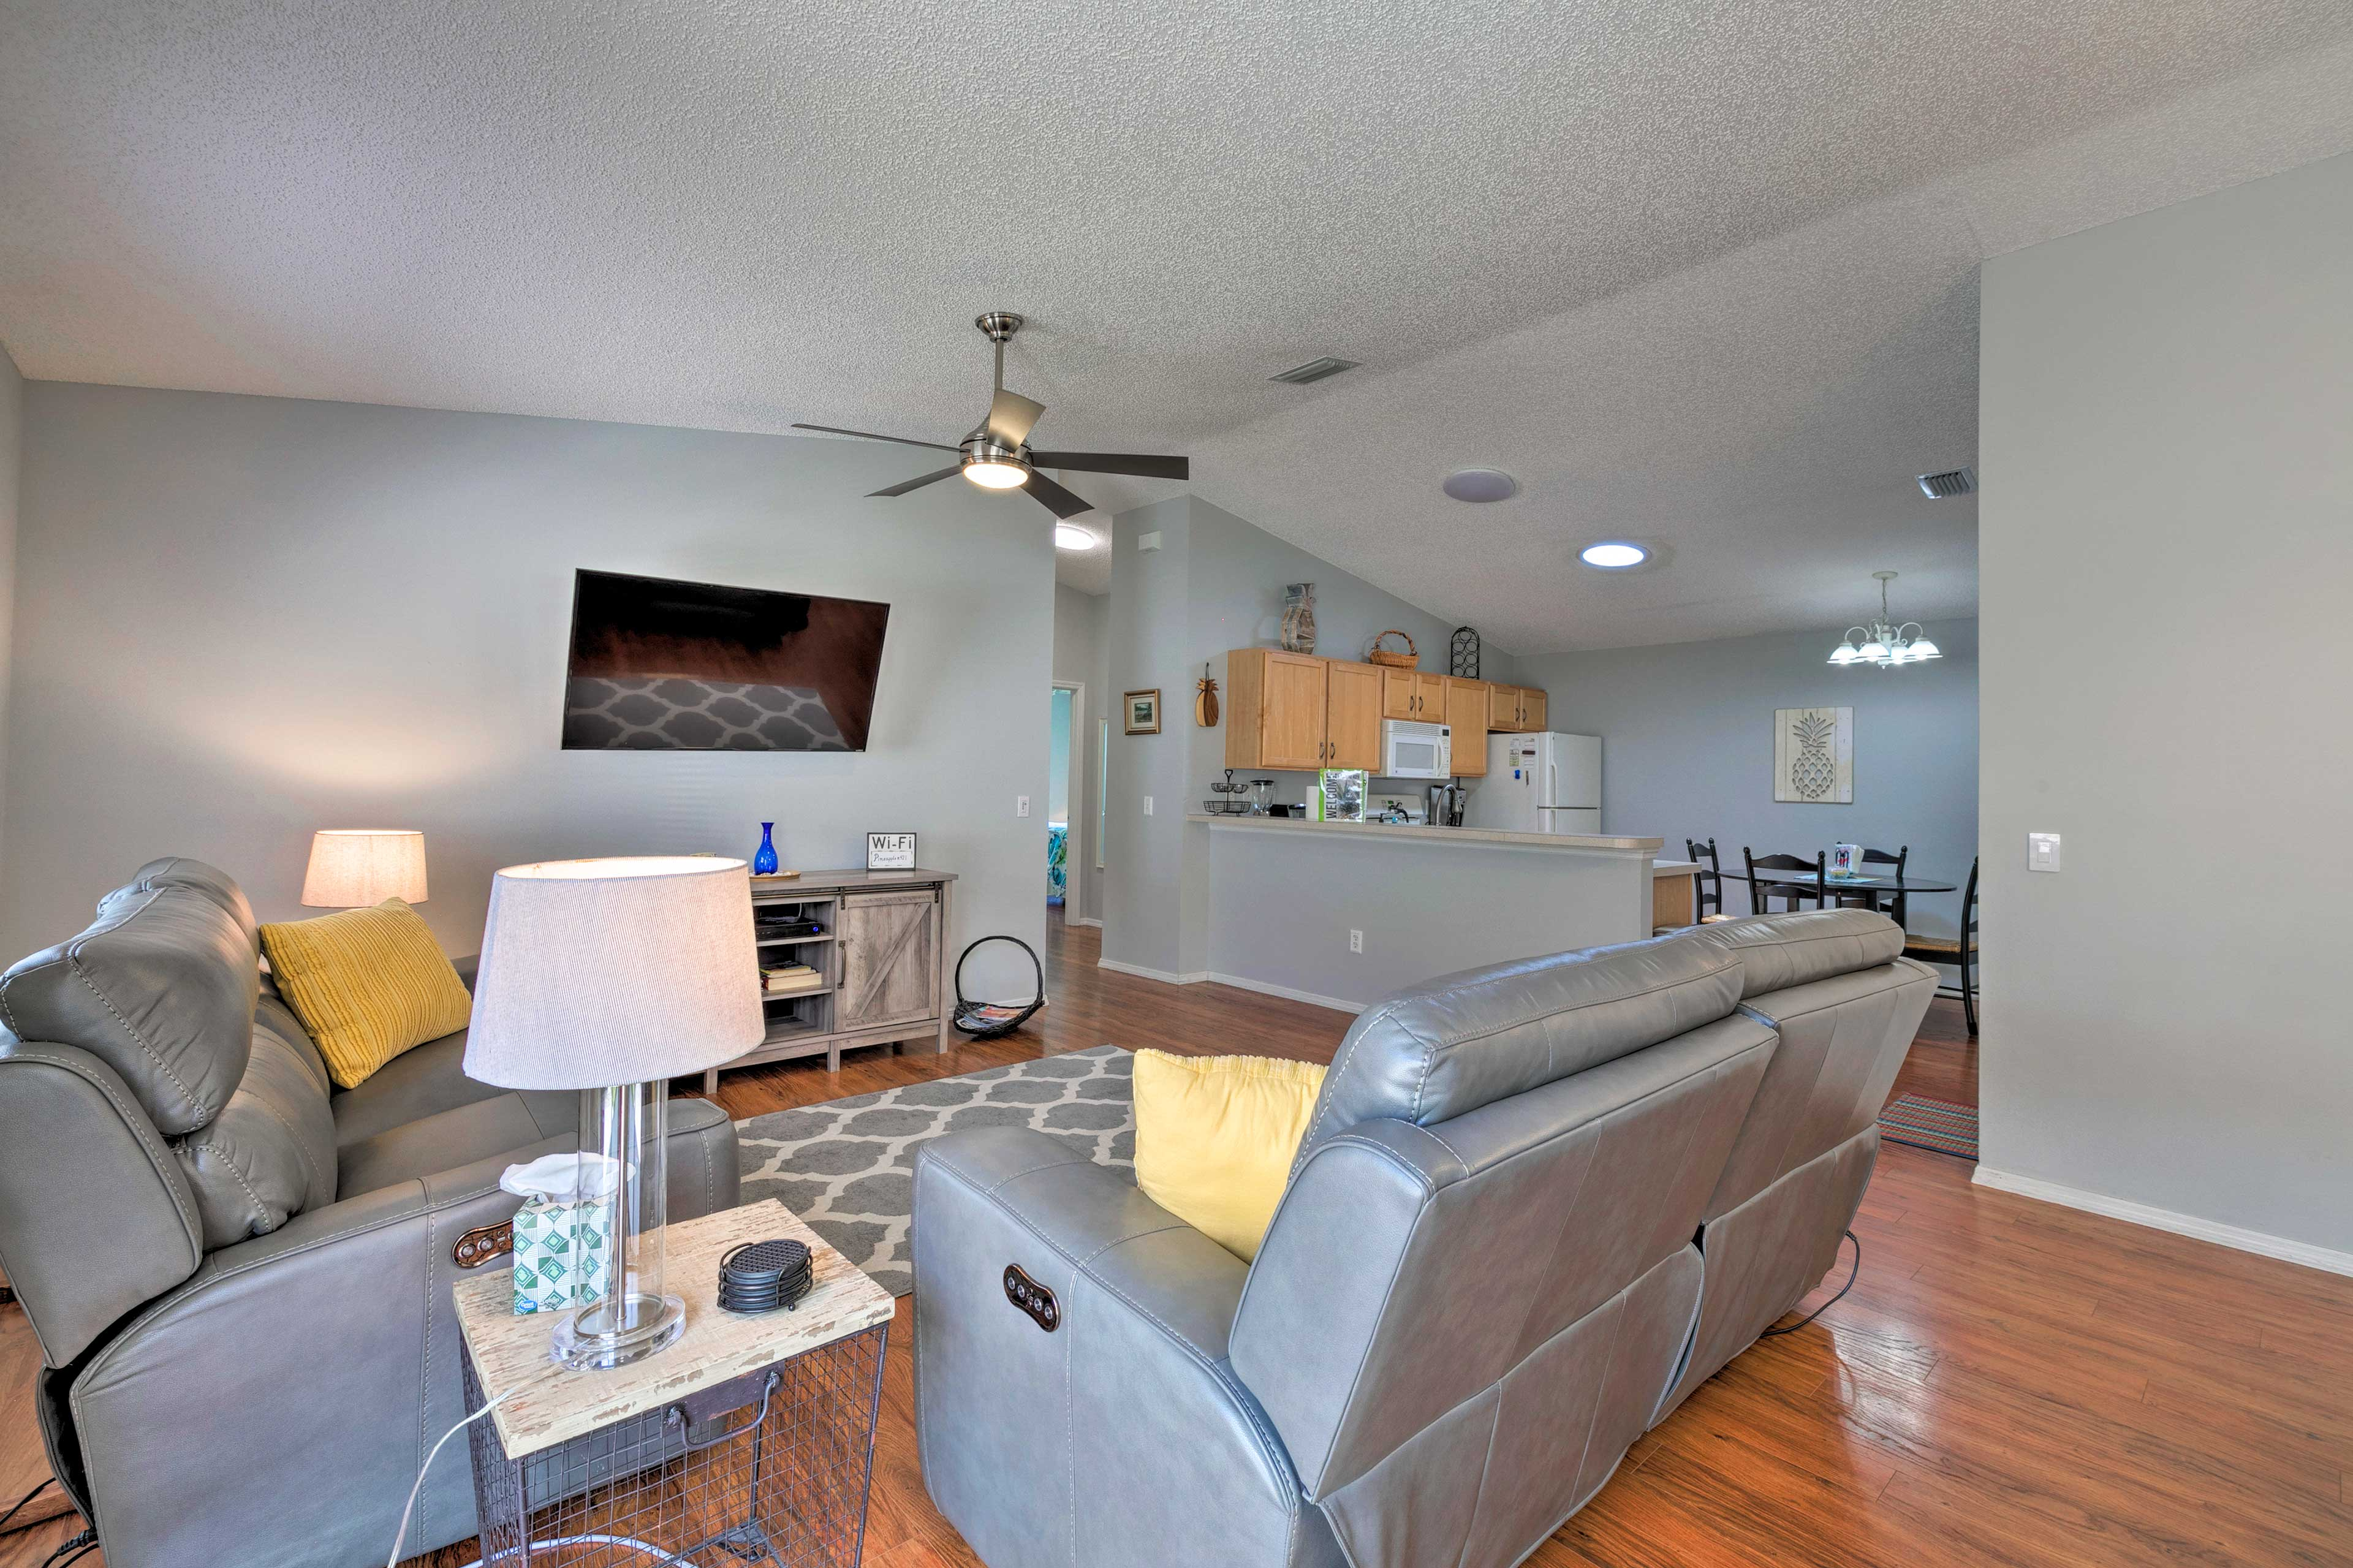 Lounge in style and watch your favorite shows on the flat-screen TV.